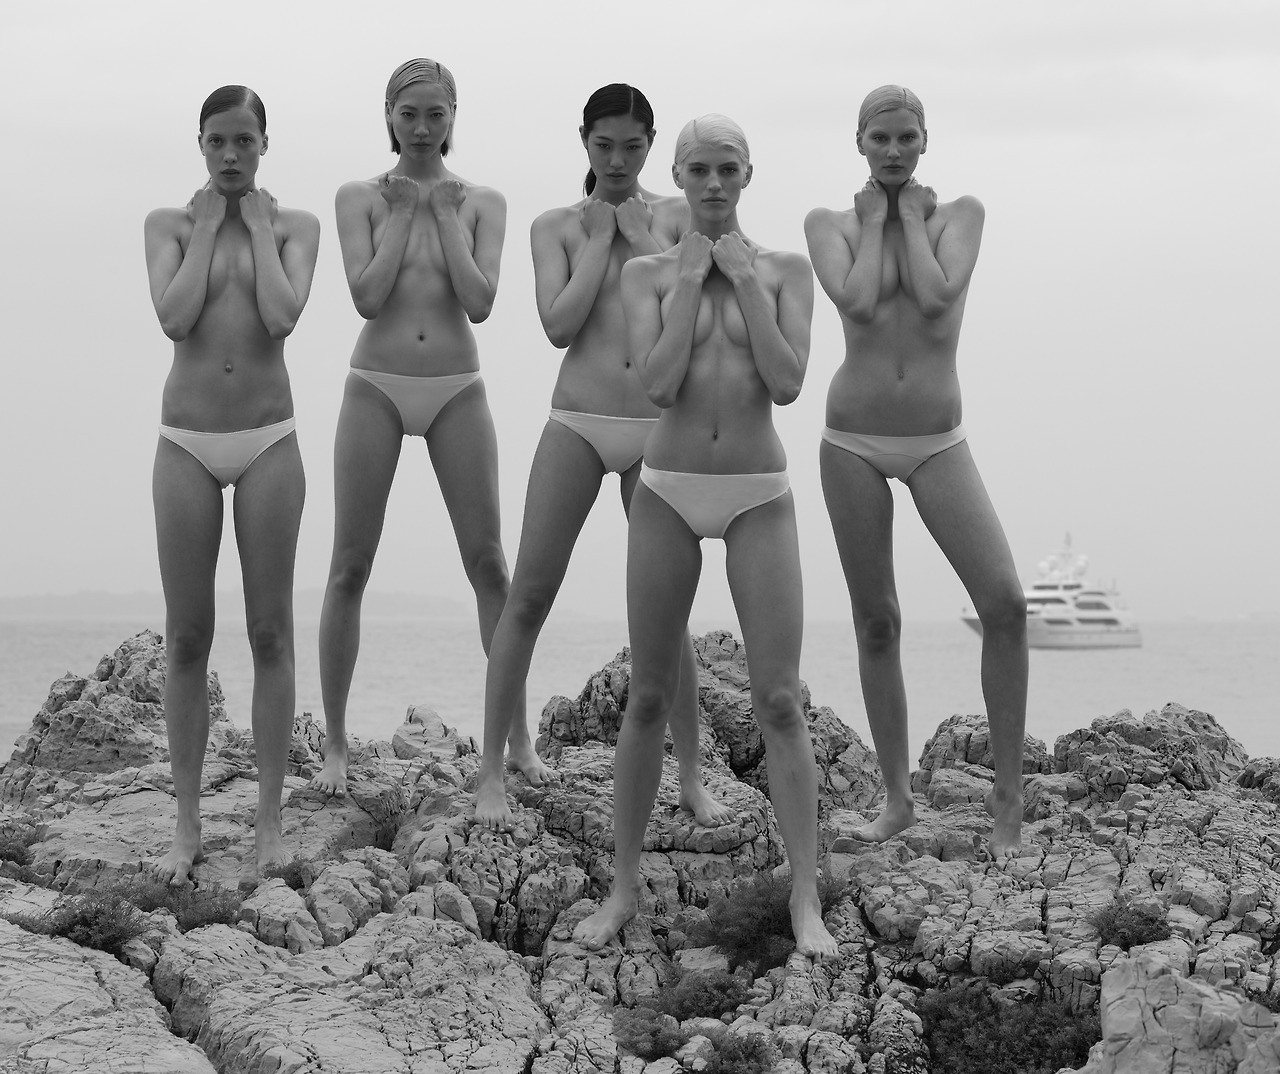 CR Fashion Book Hotel Eden Roc Cap d'Antibes models front